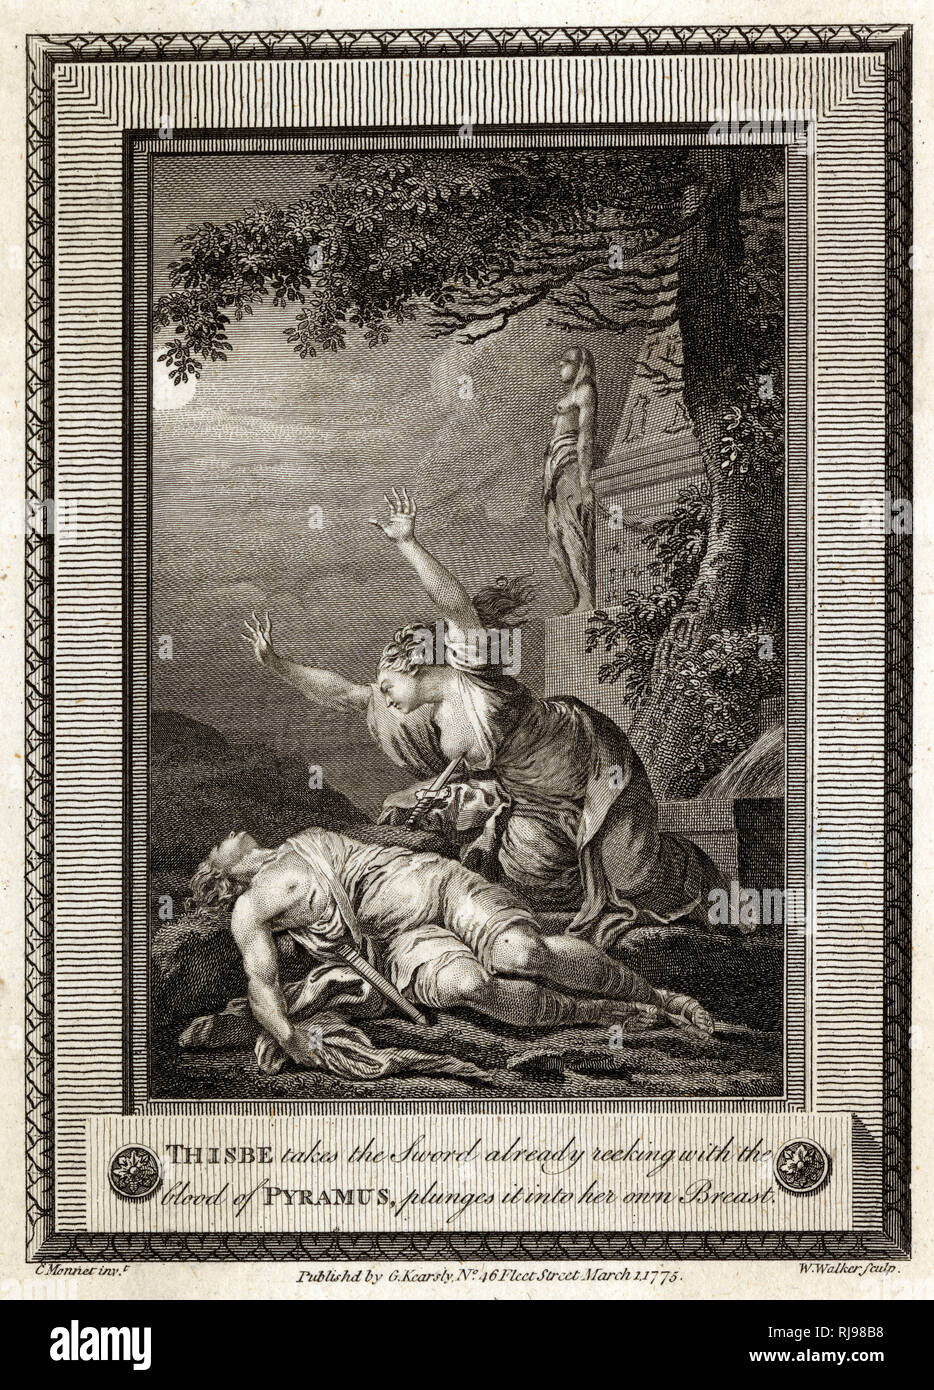 Babylonian youth Pyramus has a rendezvous with Thisbe : she, scared by lion, flees ; he finds bloody veil, assumes her dead, kills himself ; she finds him dead, stabs herself - Stock Image